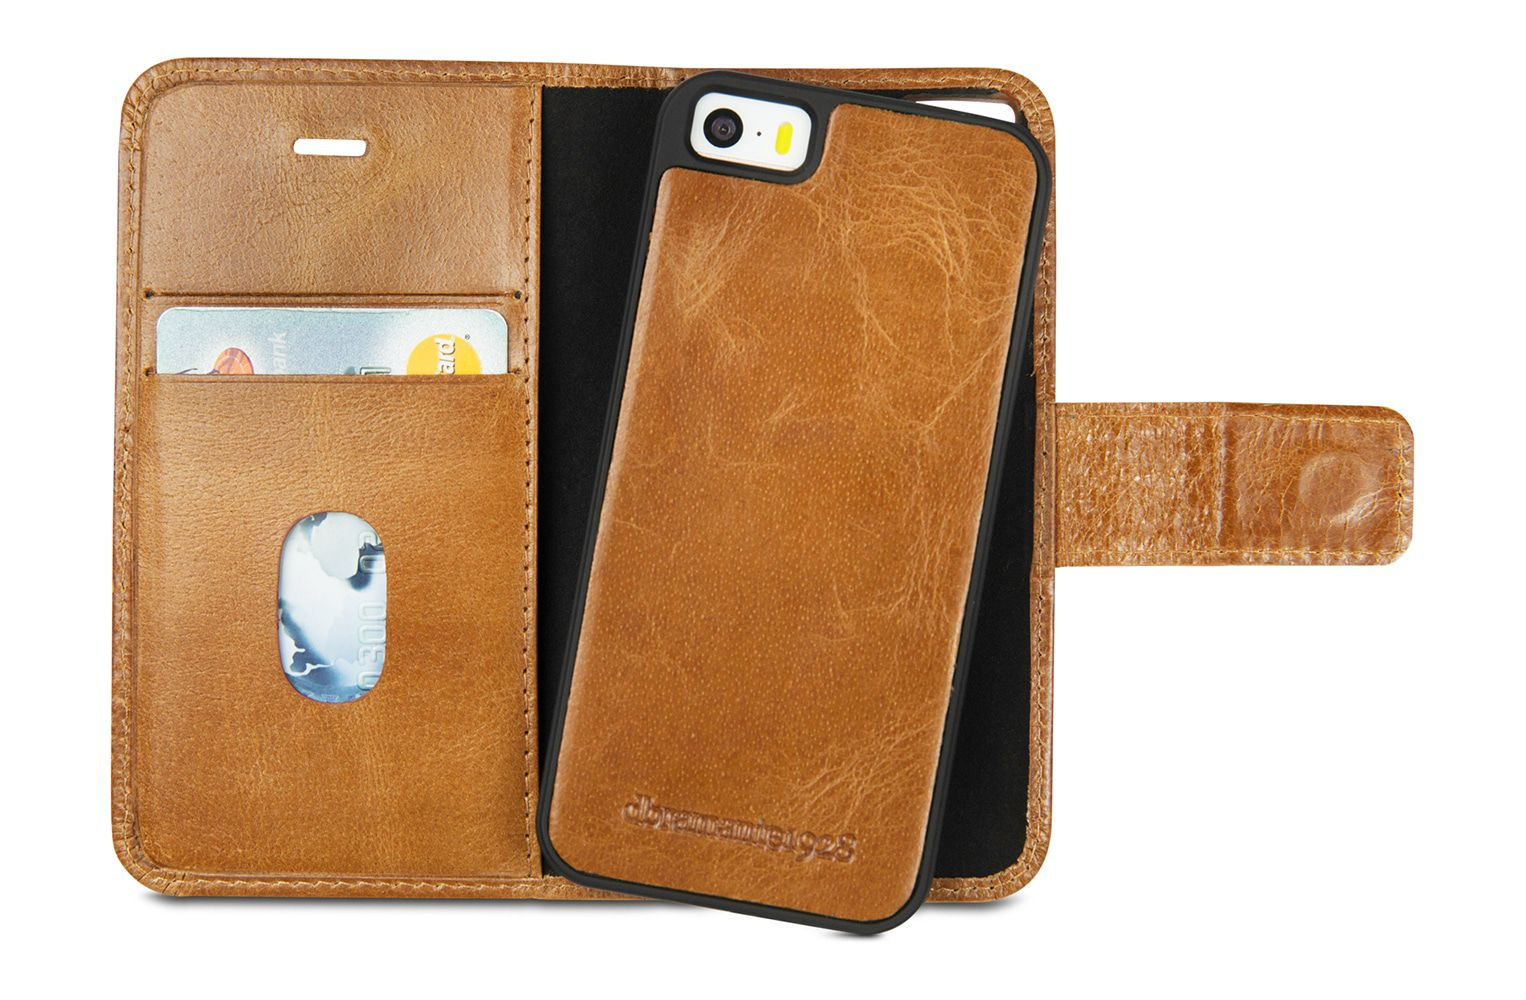 iPhone hoesje dbramante1928 Lynge Leather Wallet iPhone 5/5S/SE Hoesje Tan